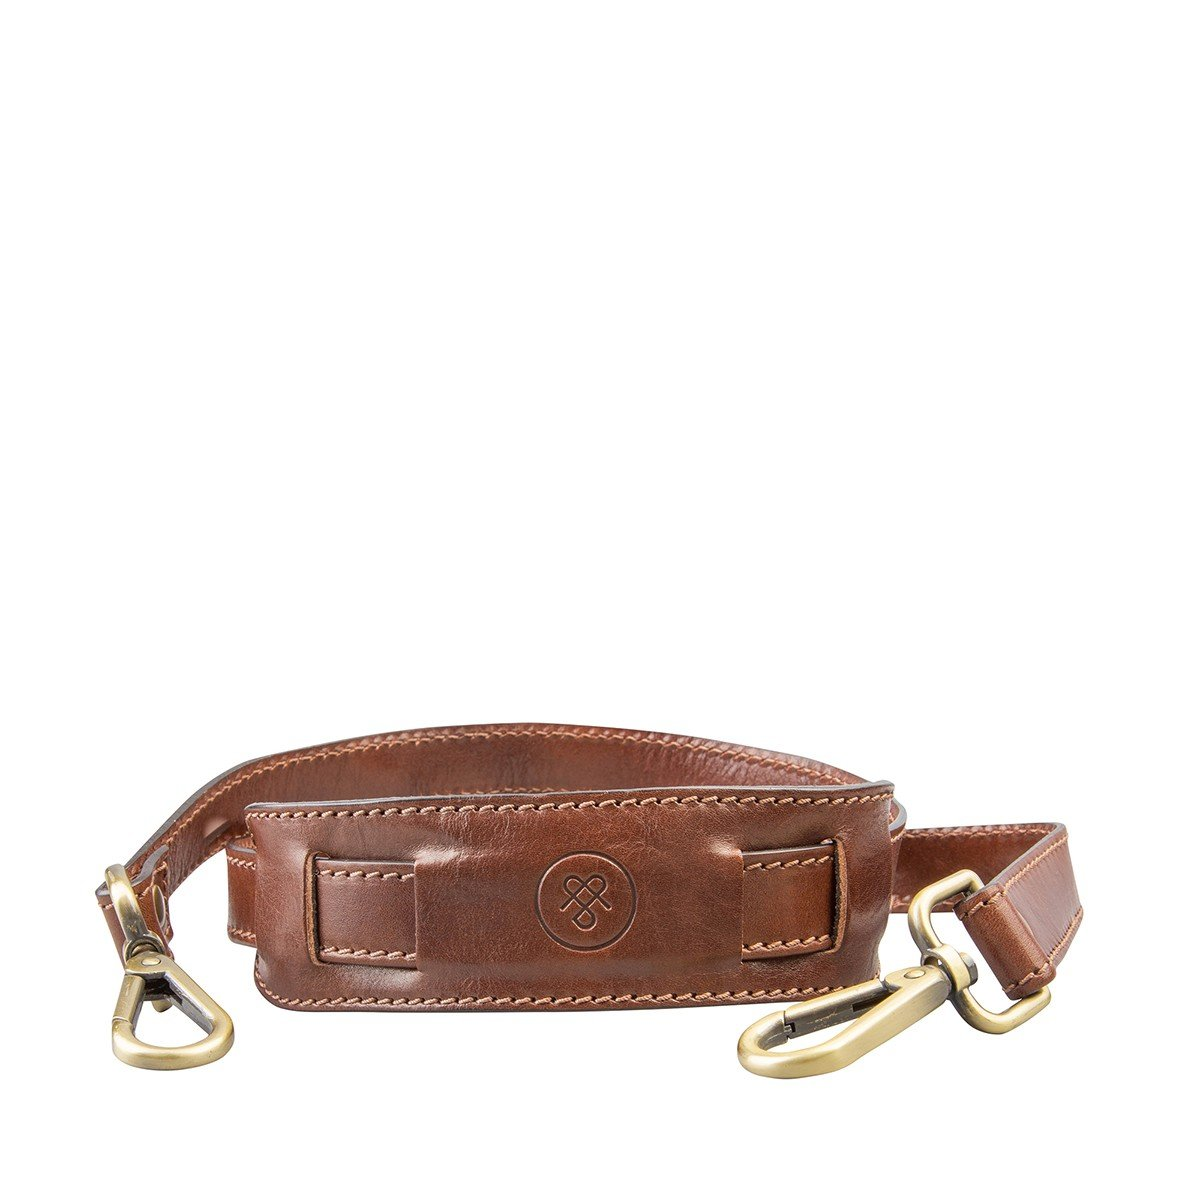 Maxwell Scott Luxury Tan Leather Bag Shoulder Strap - One Size